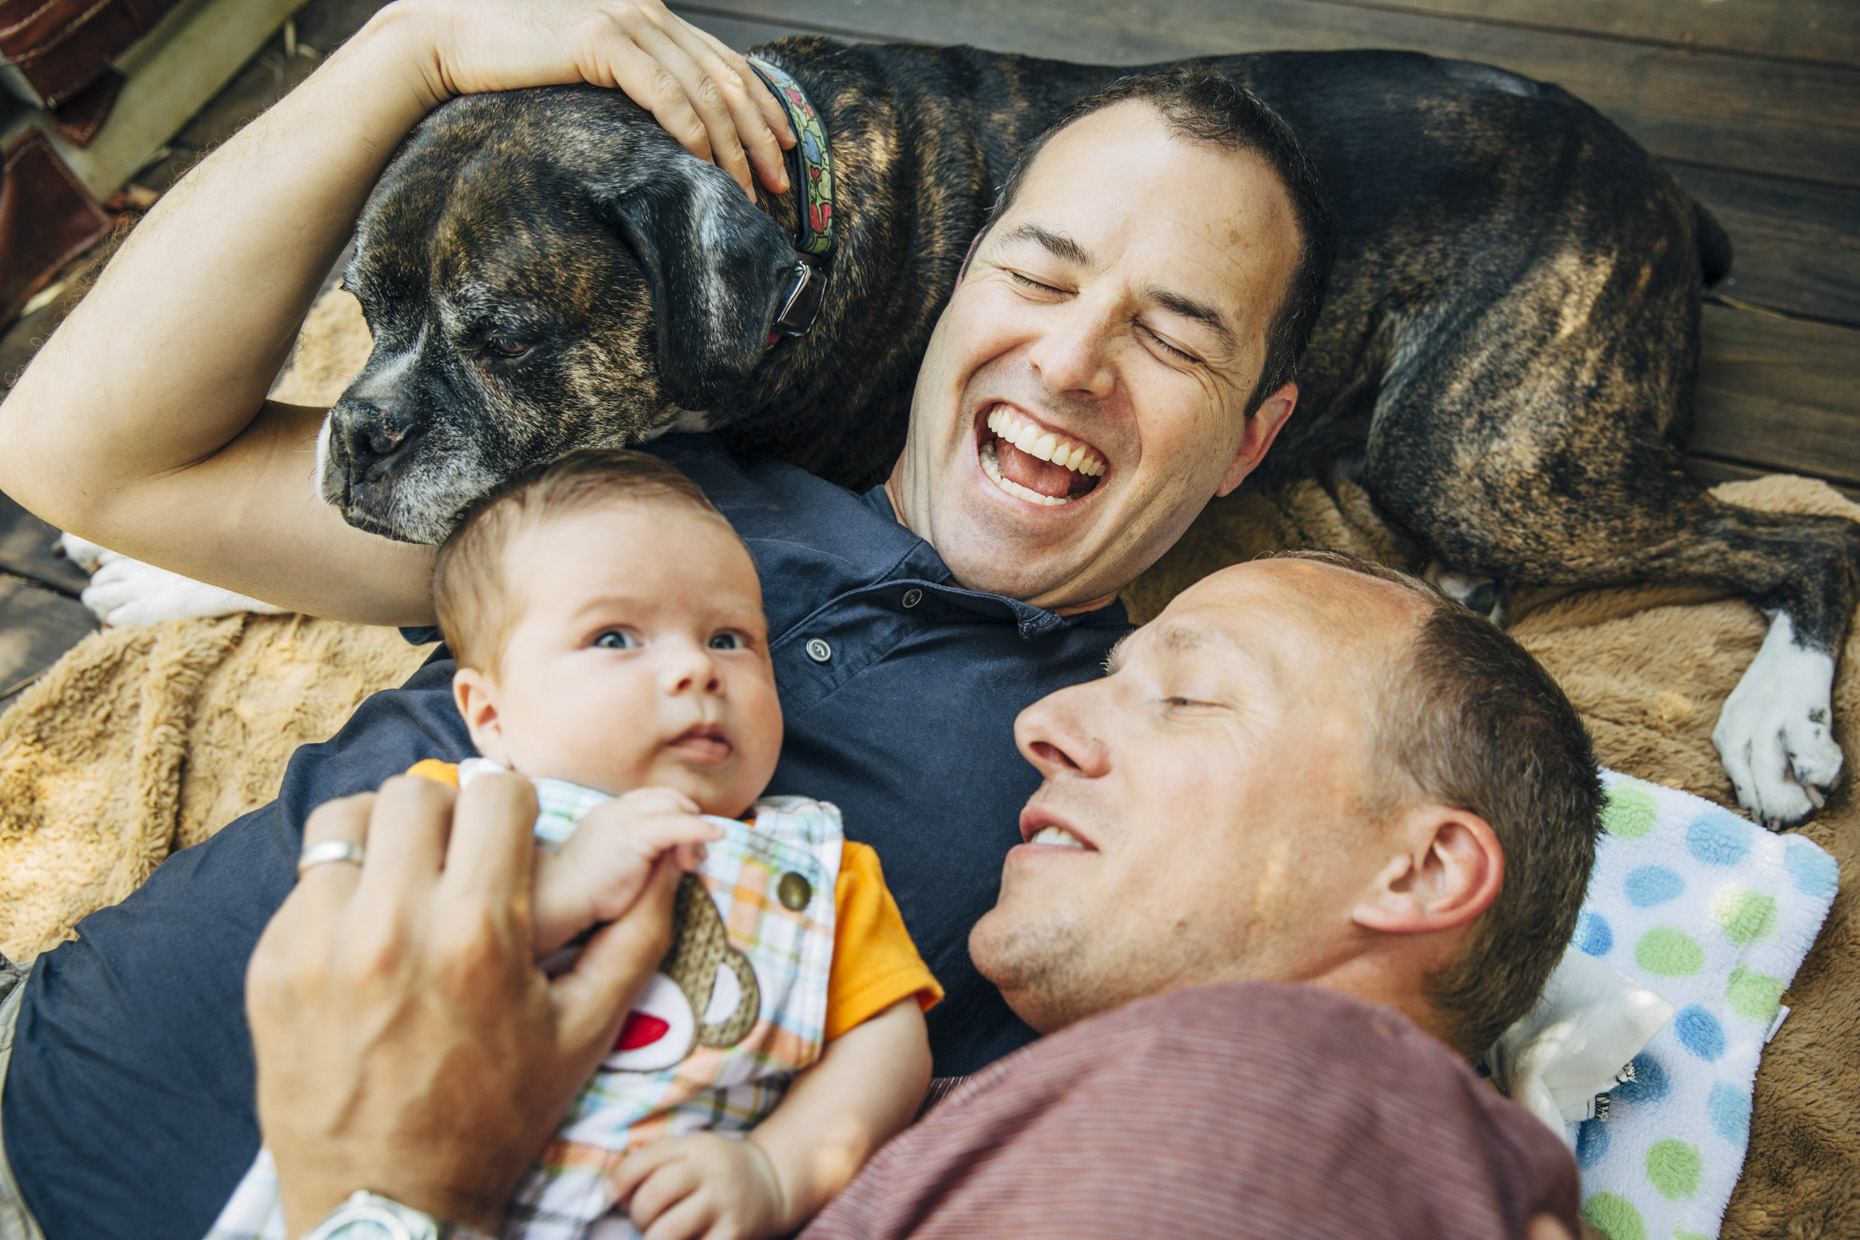 Gay-dads-snuggling-dog-baby--Inti-St-Clair-Lifestyle-is2014080300808